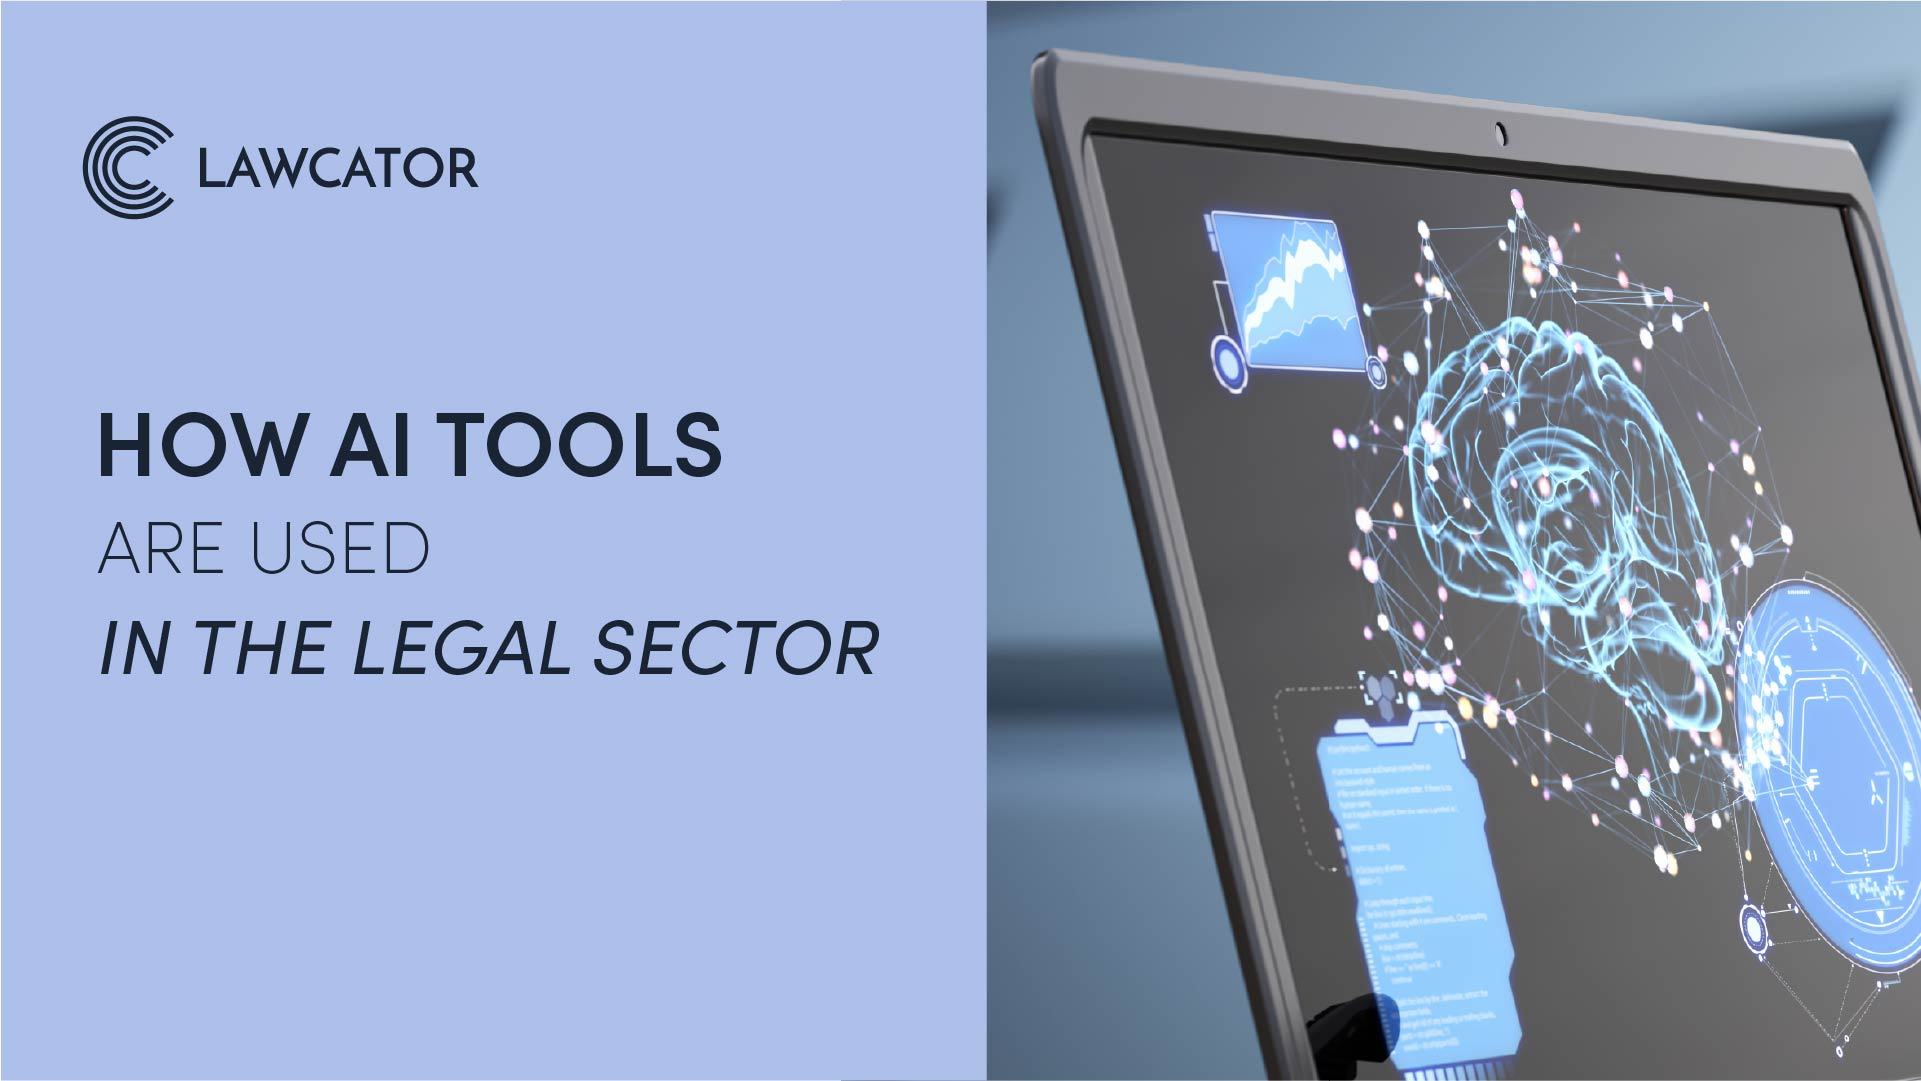 How AI Tools Are Used in the Legal Sector